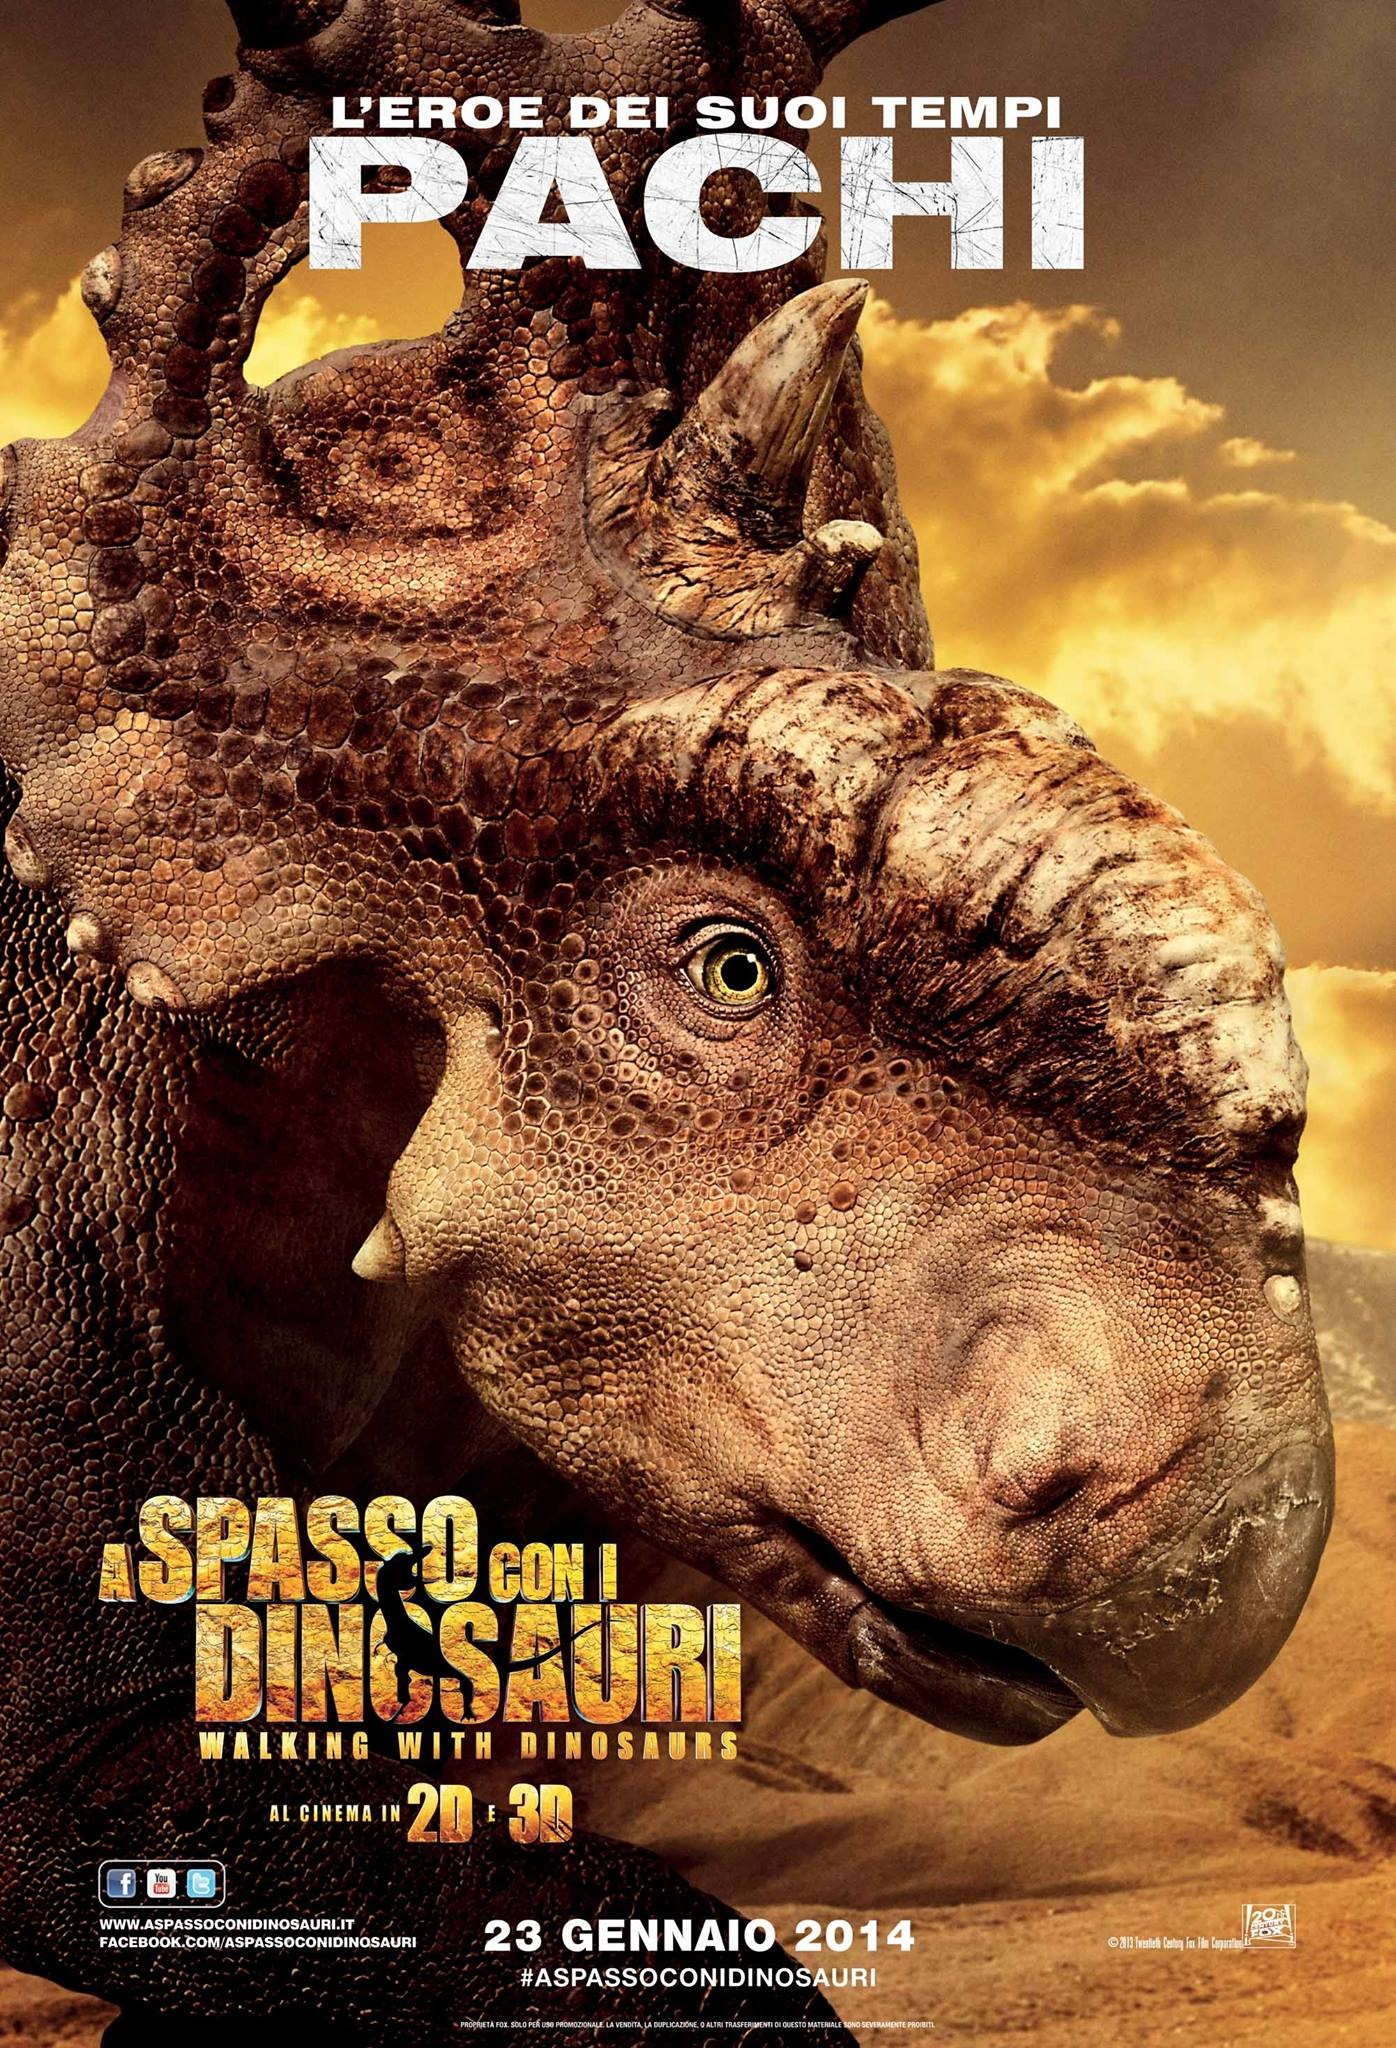 Walking with Dinosaurs-Official Poster Banner PROMO BANNER-27SETEMBRO2013-02